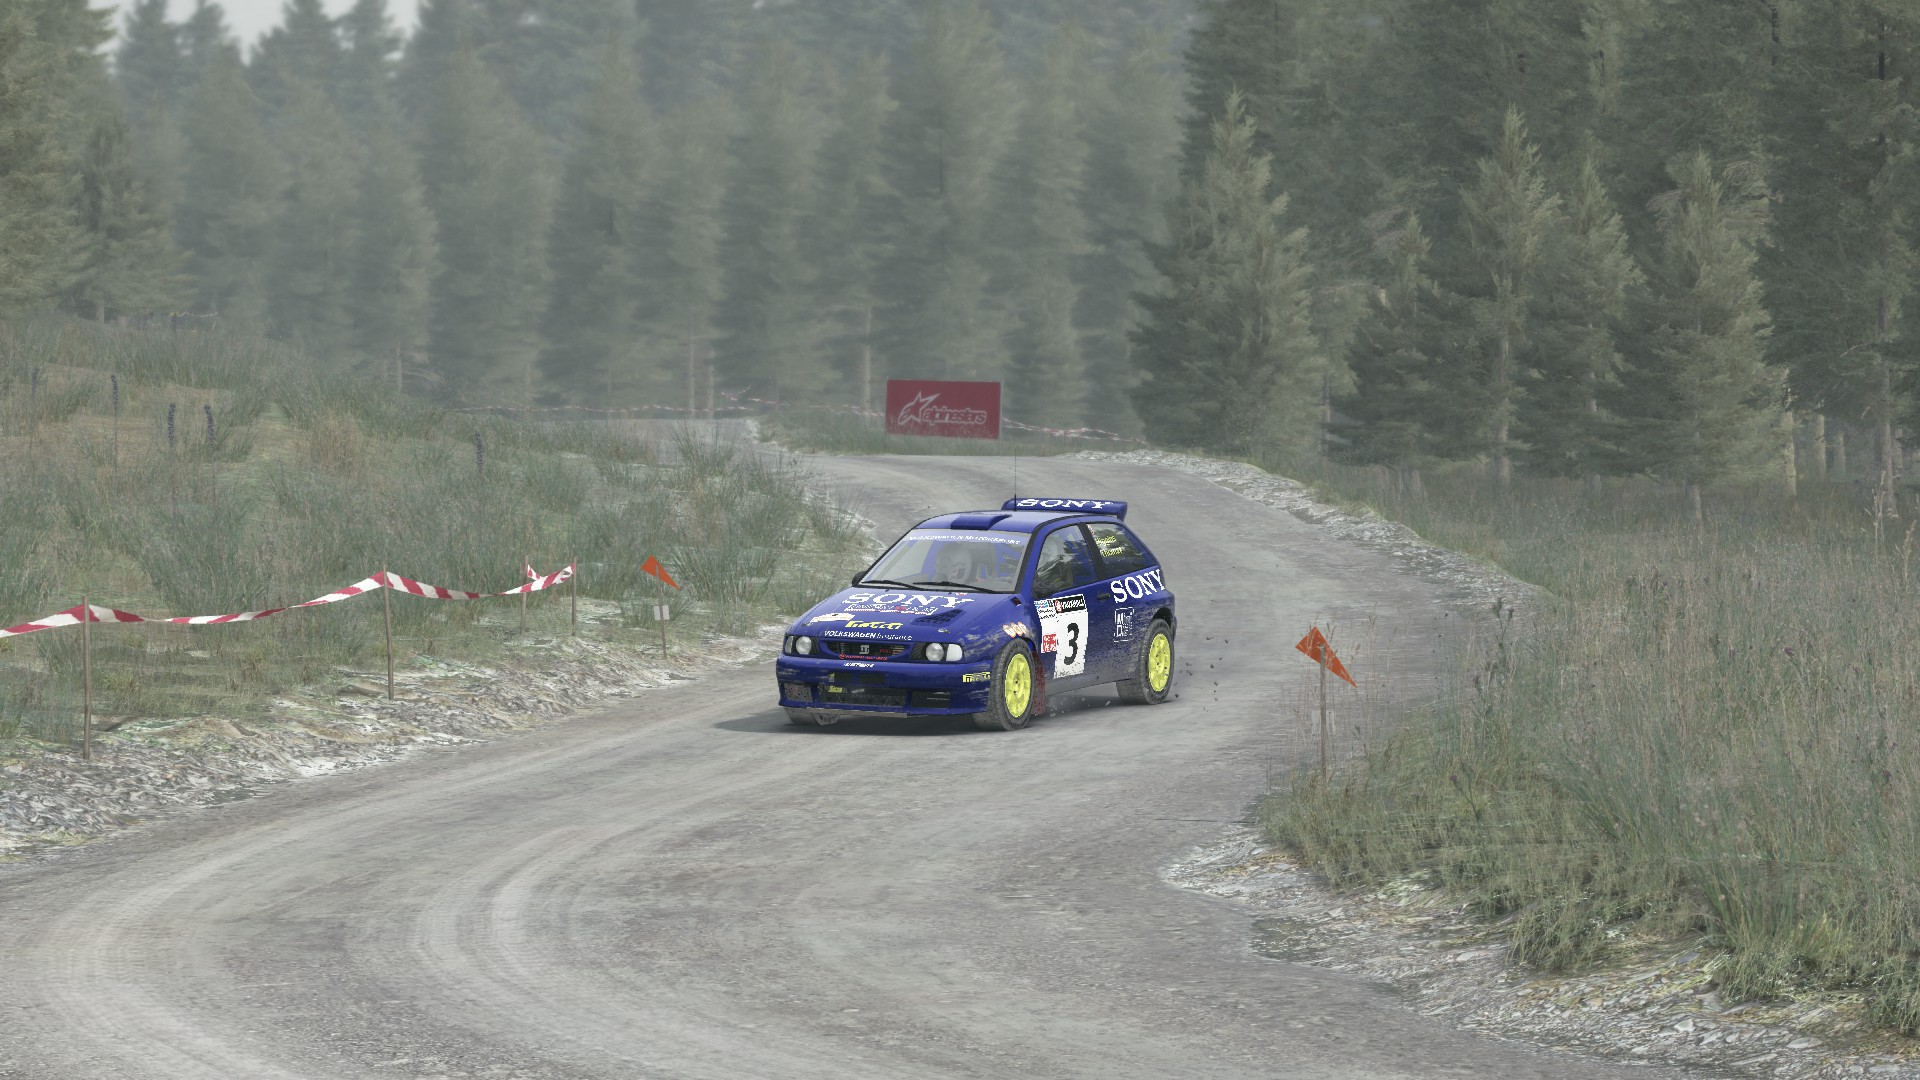 Volkswagen Golf IV Kit Car (Mark Higgins - Pirelli International Rally 1999) (3).jpg